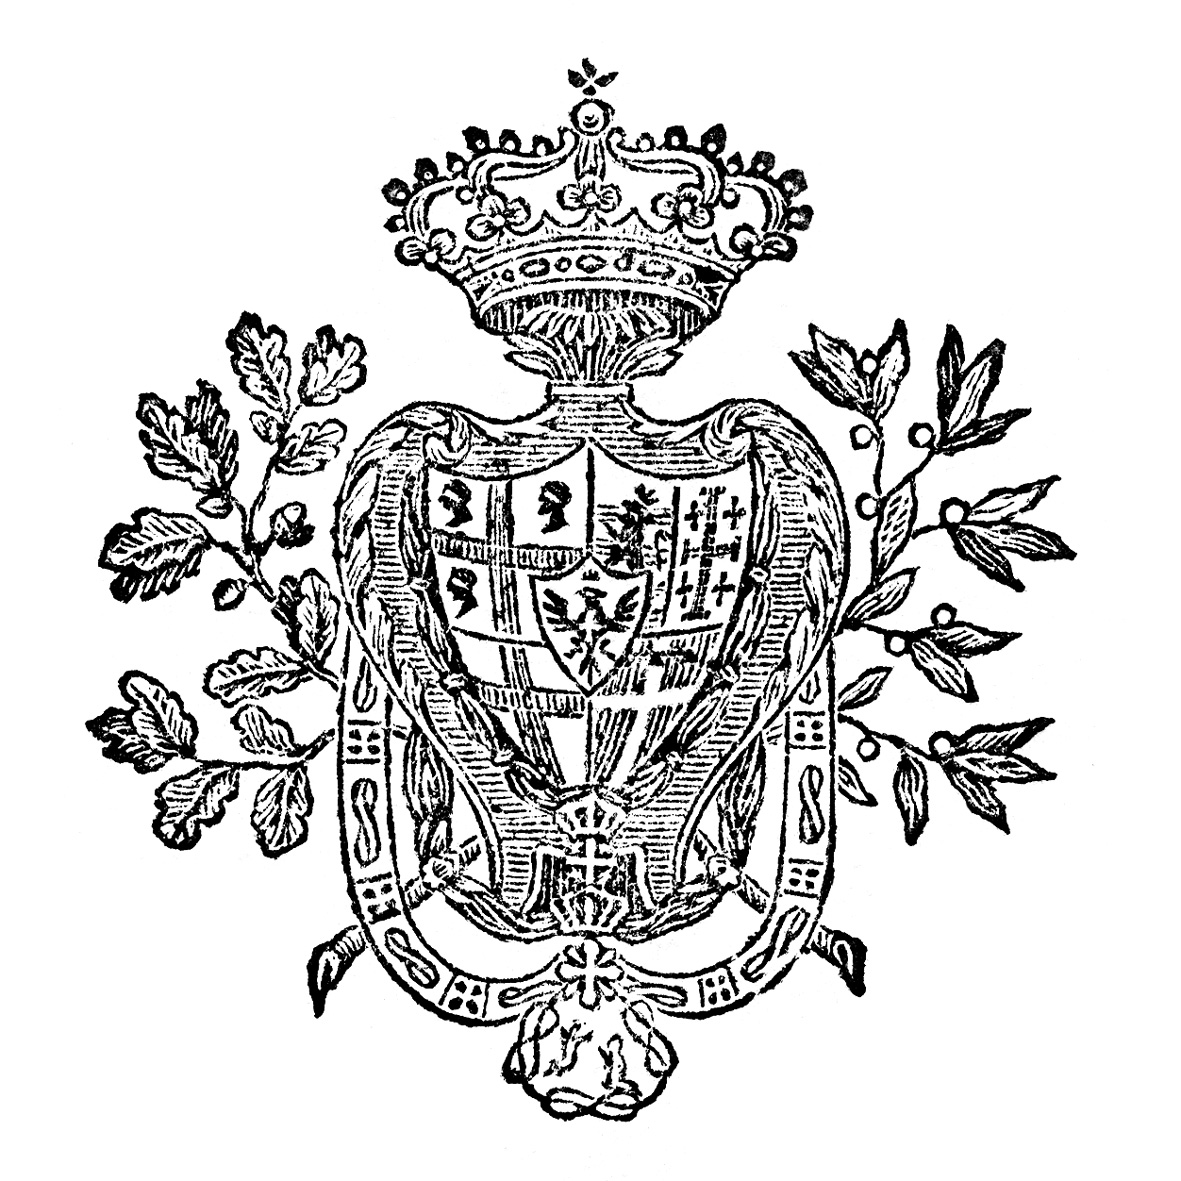 Mobile Blank Coat Of Arms Coloring Pages Coloring Pages Australian Coat Of Arms Colouring Page